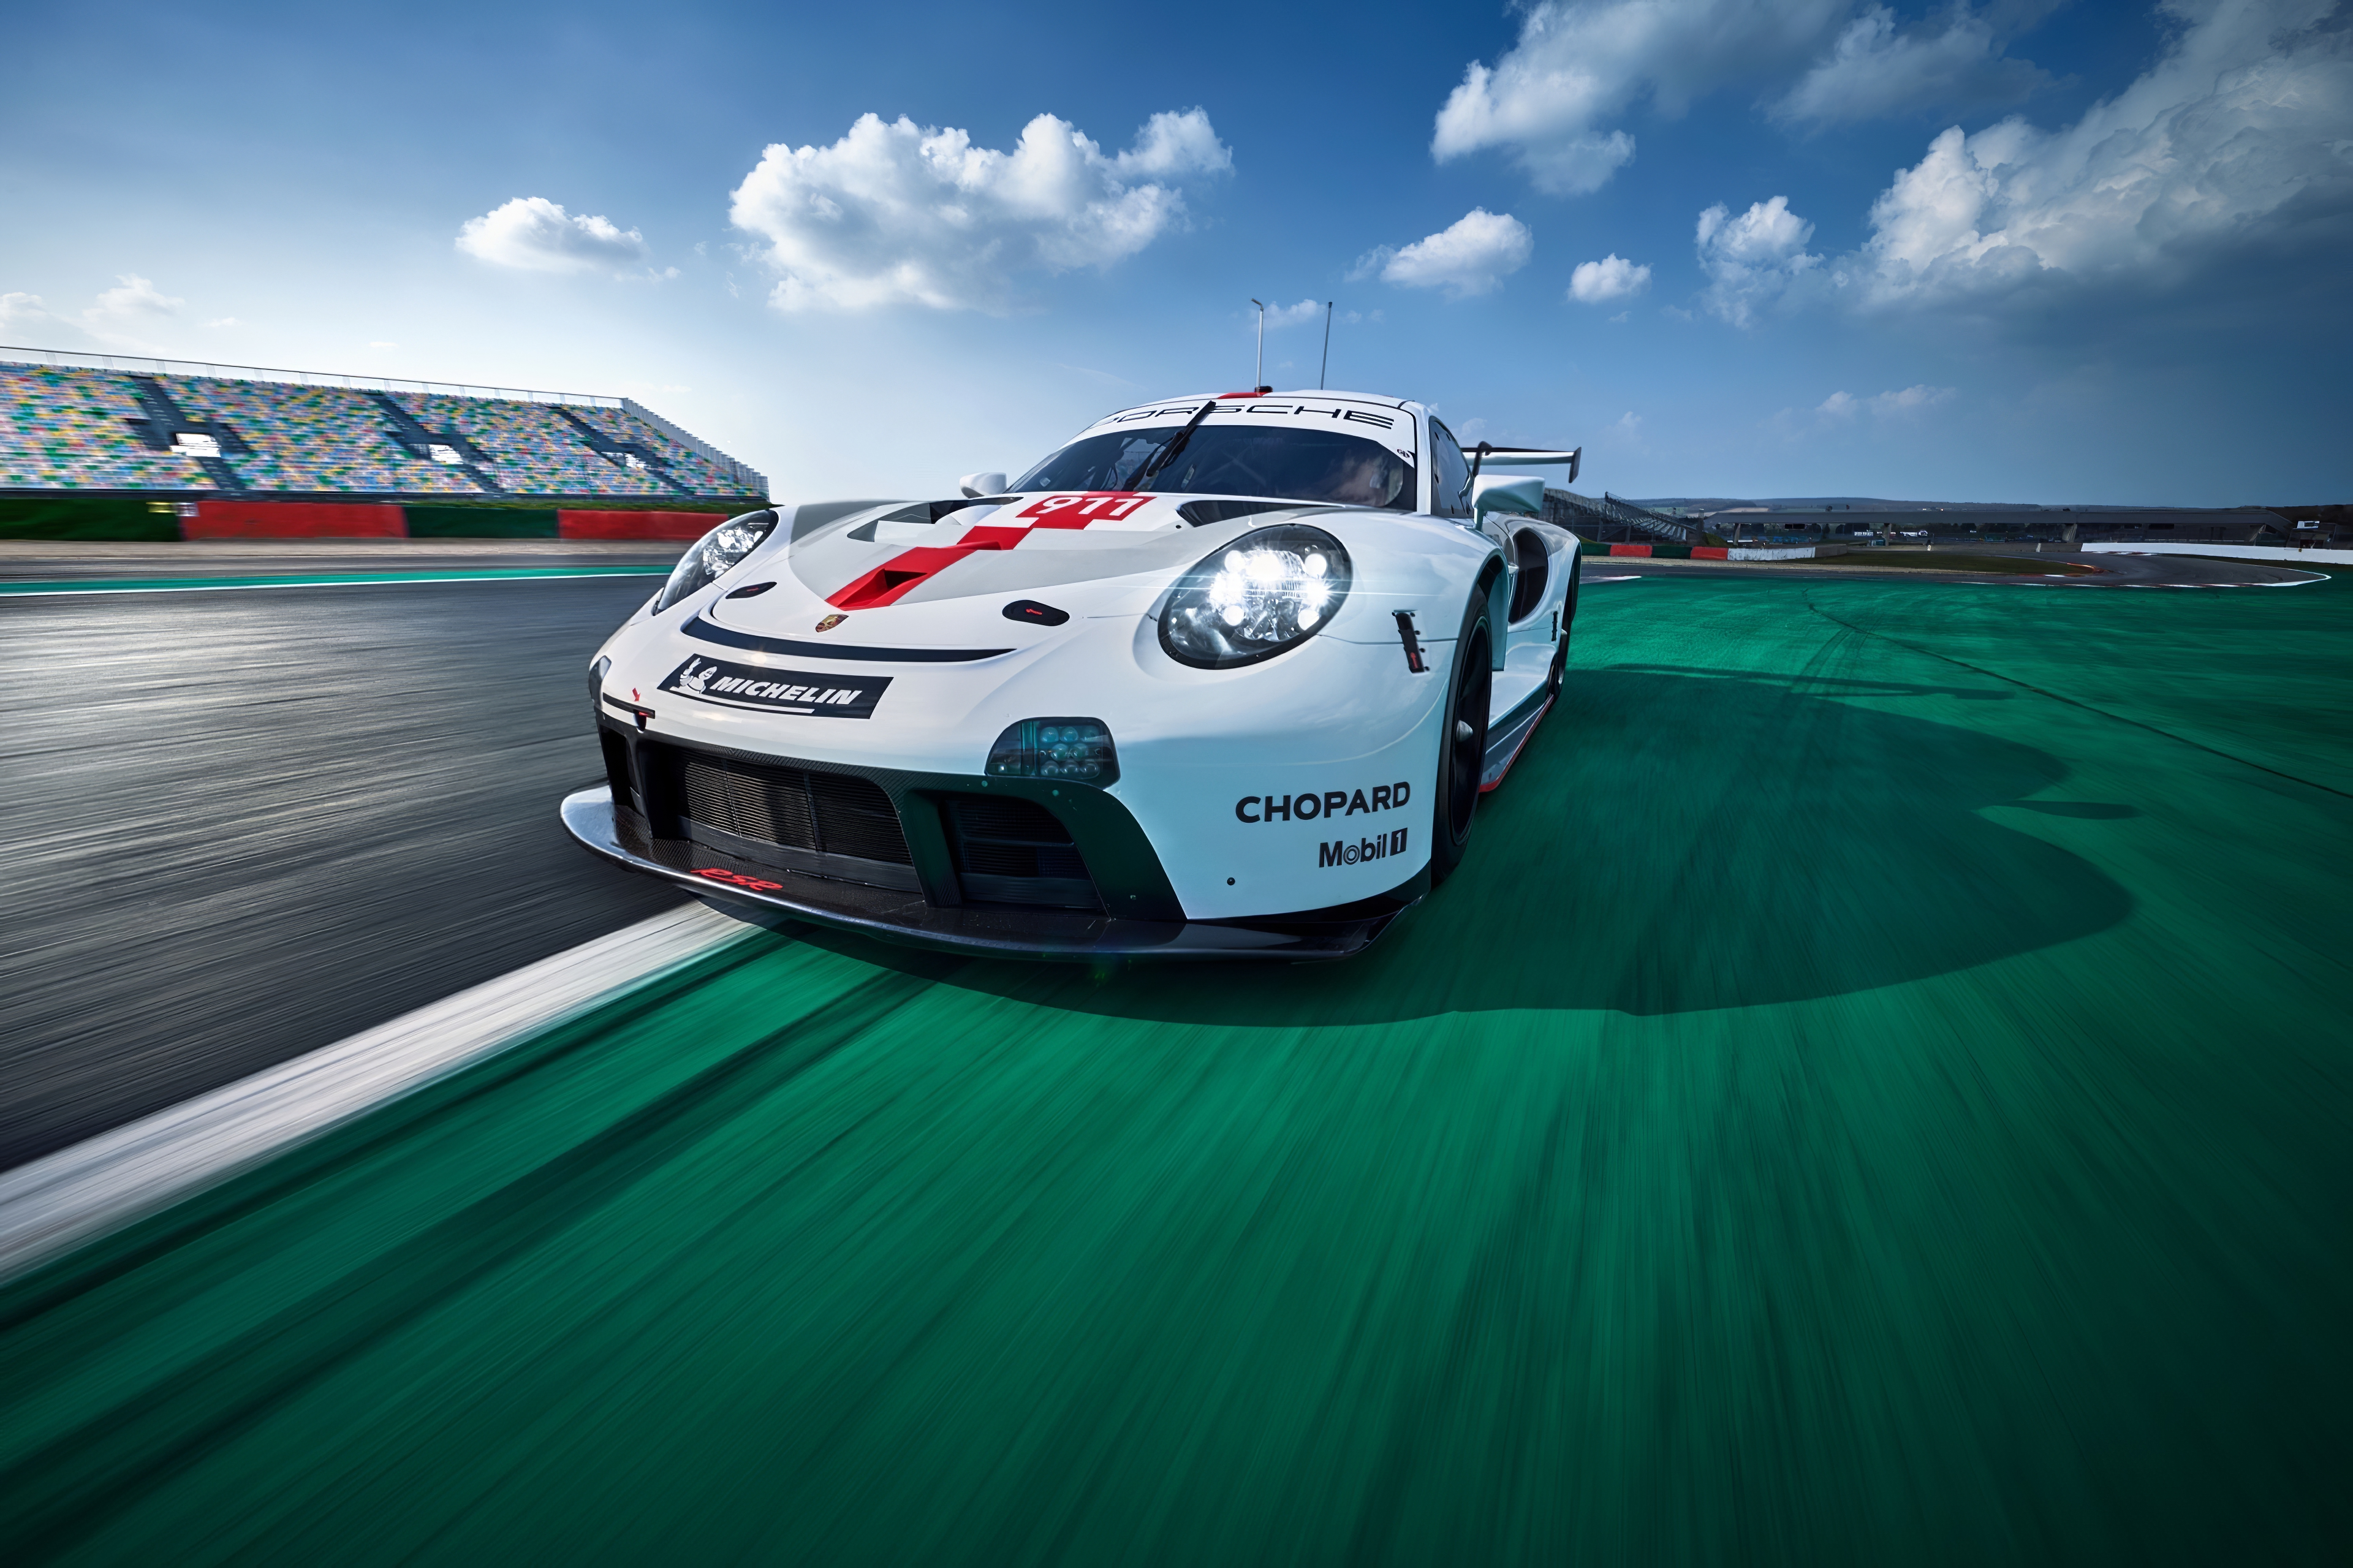 Porsche 911 Rsr 2020 Hd Cars 4k Wallpapers Images Backgrounds Photos And Pictures